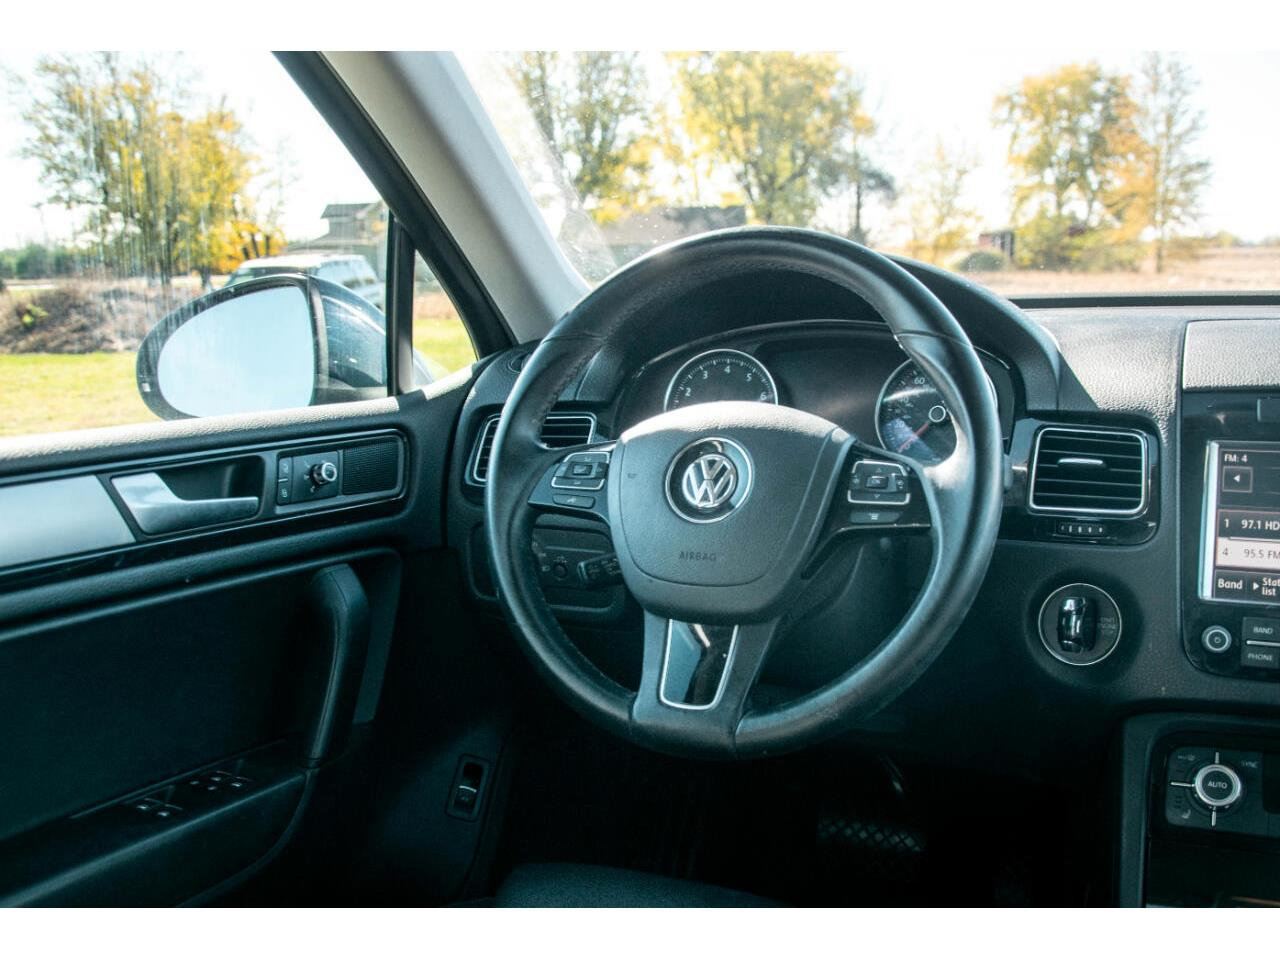 2014 Volkswagen Touareg (CC-1417139) for sale in Cicero, Indiana